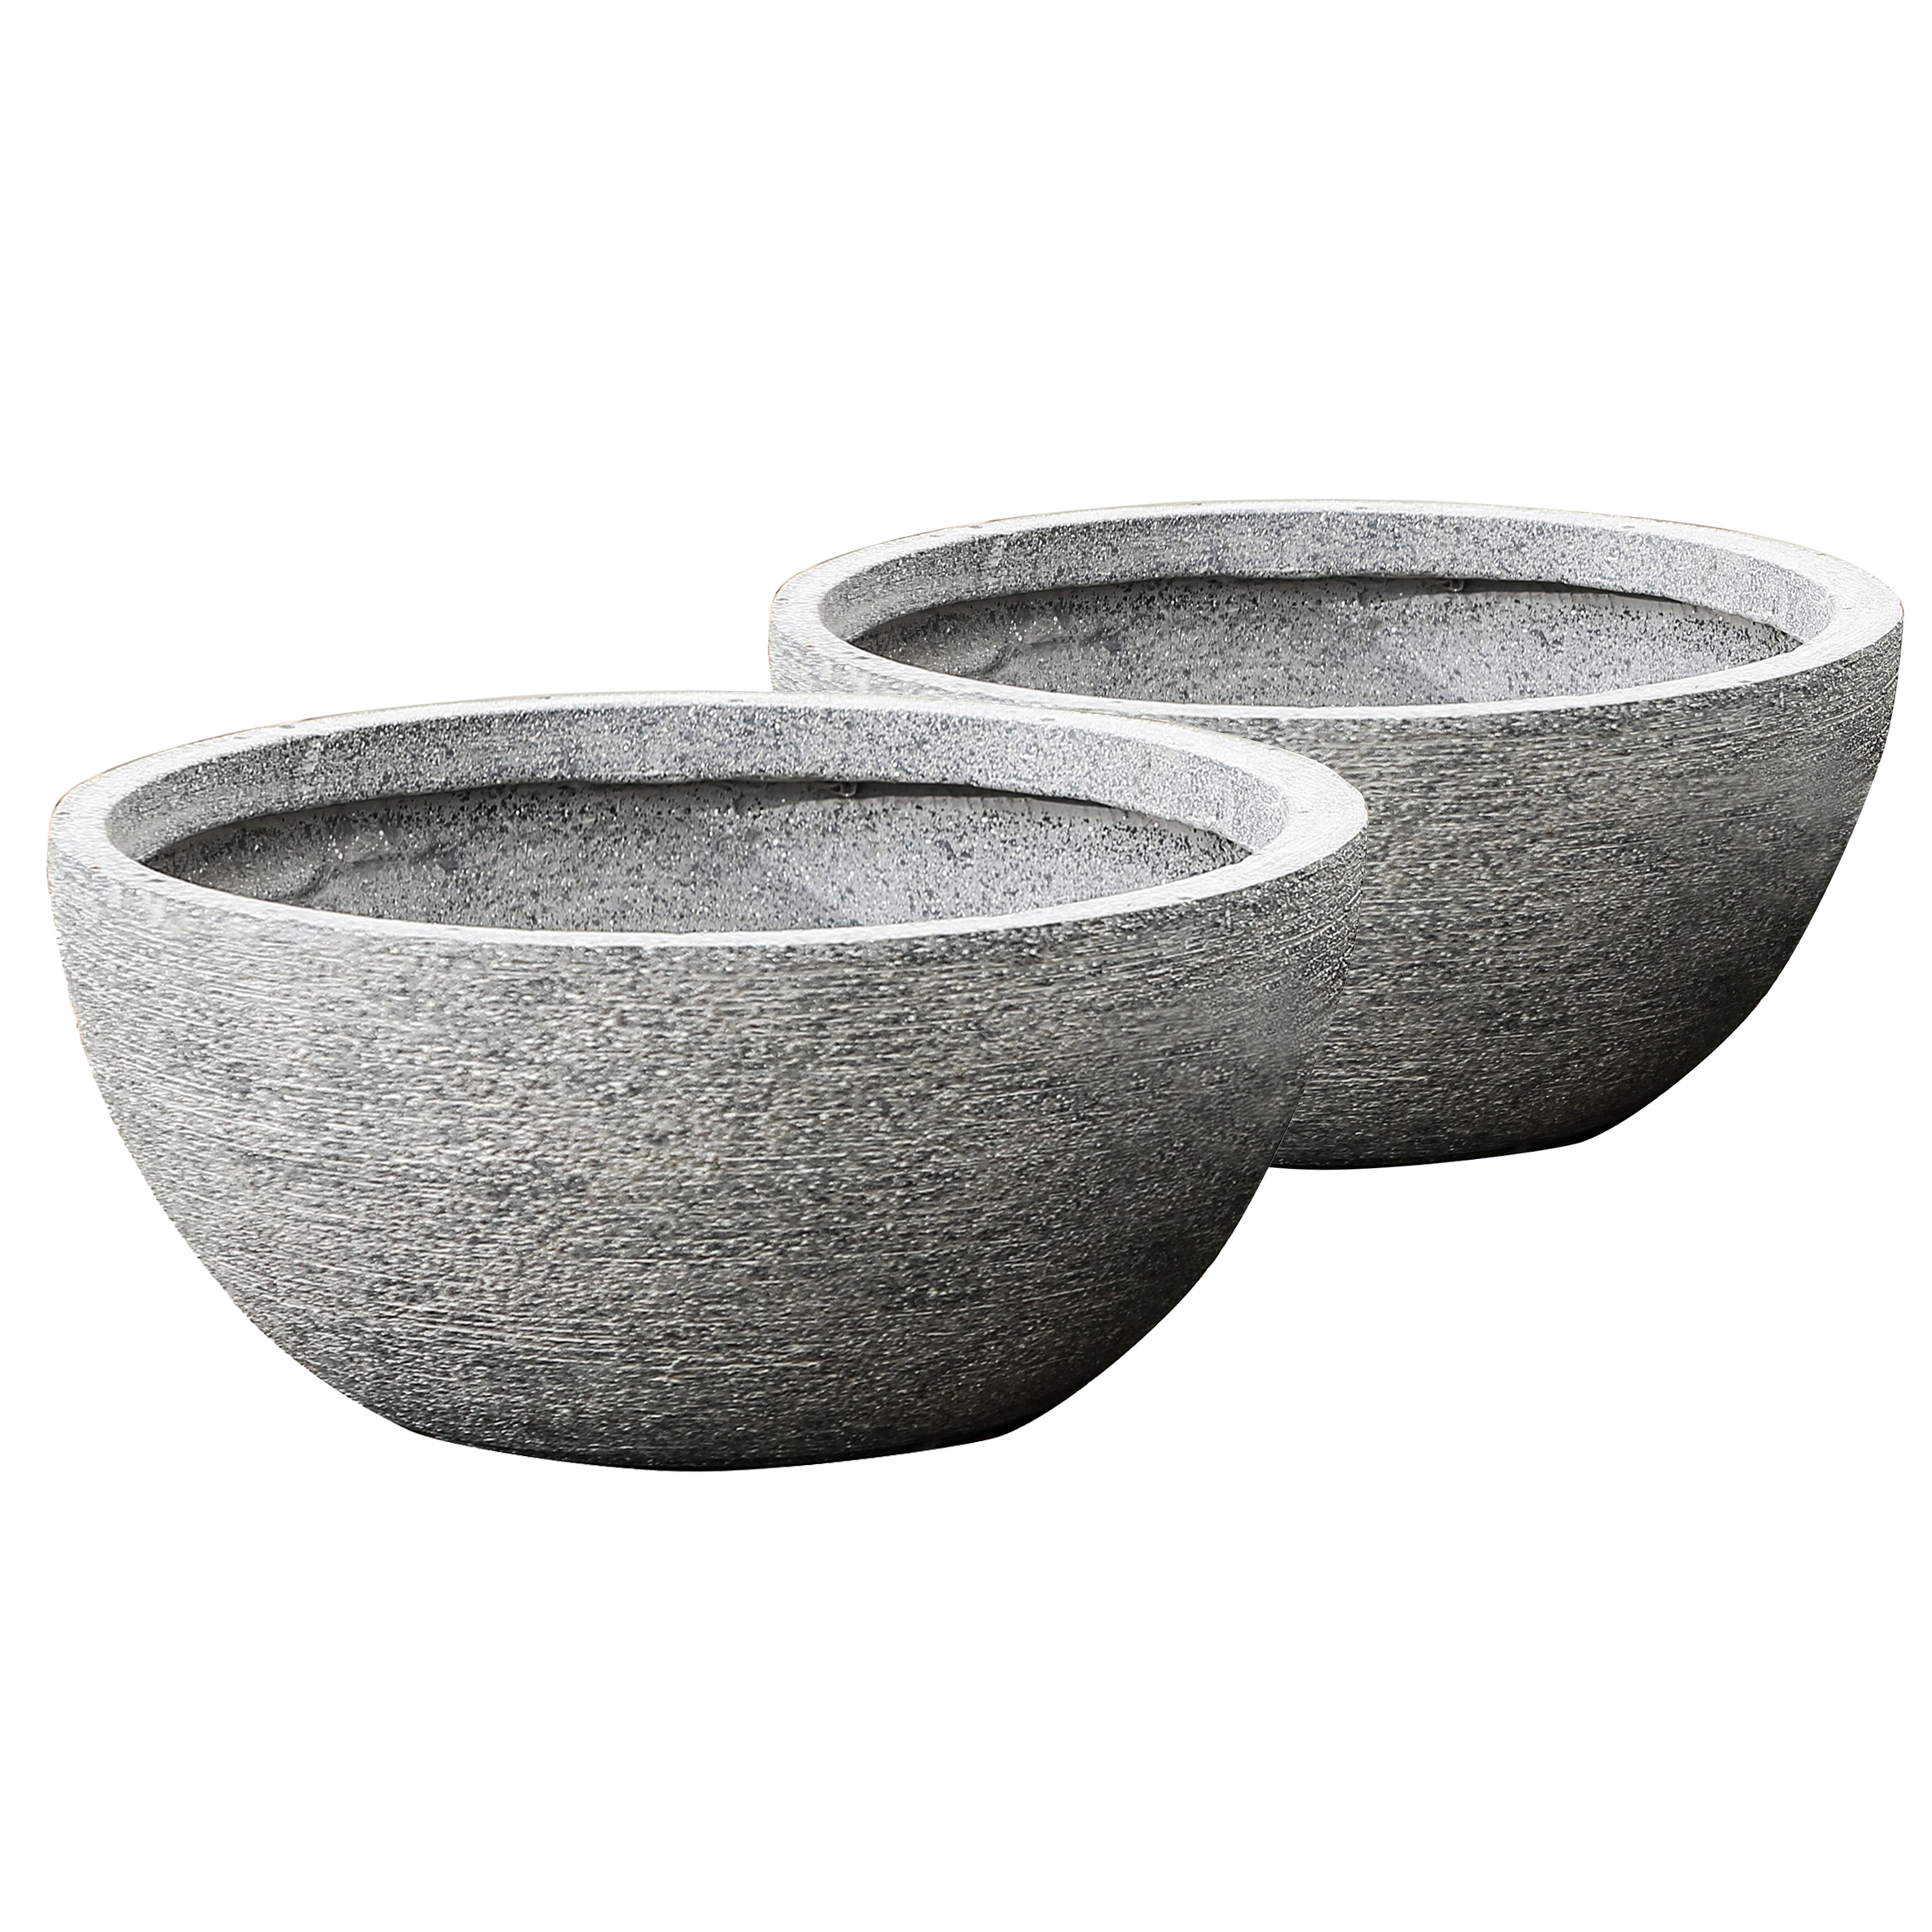 Winsome House Set of 2 Round Bowl Planters